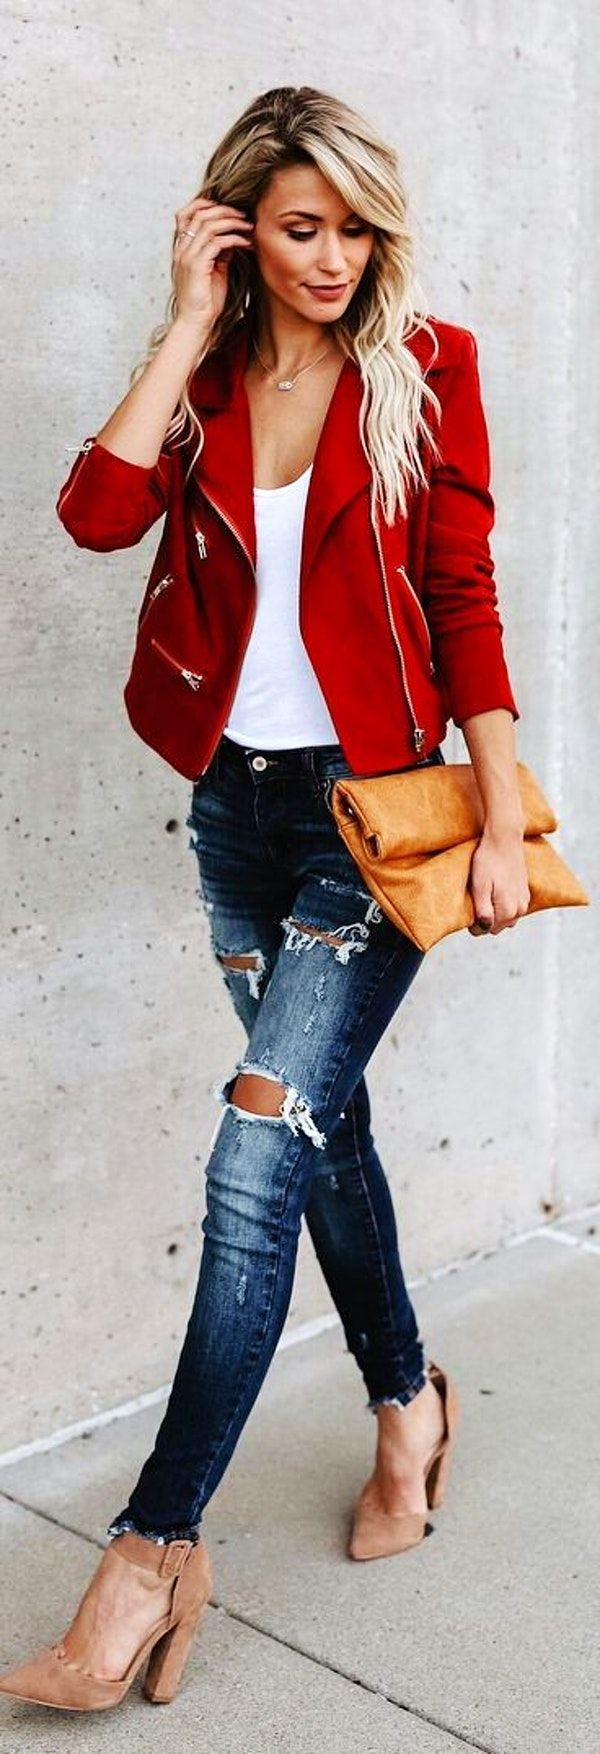 In love with the red coat!!!! #winter #outfits red zip-up coat and distressed blue fitted jeans #fitnessoutfits